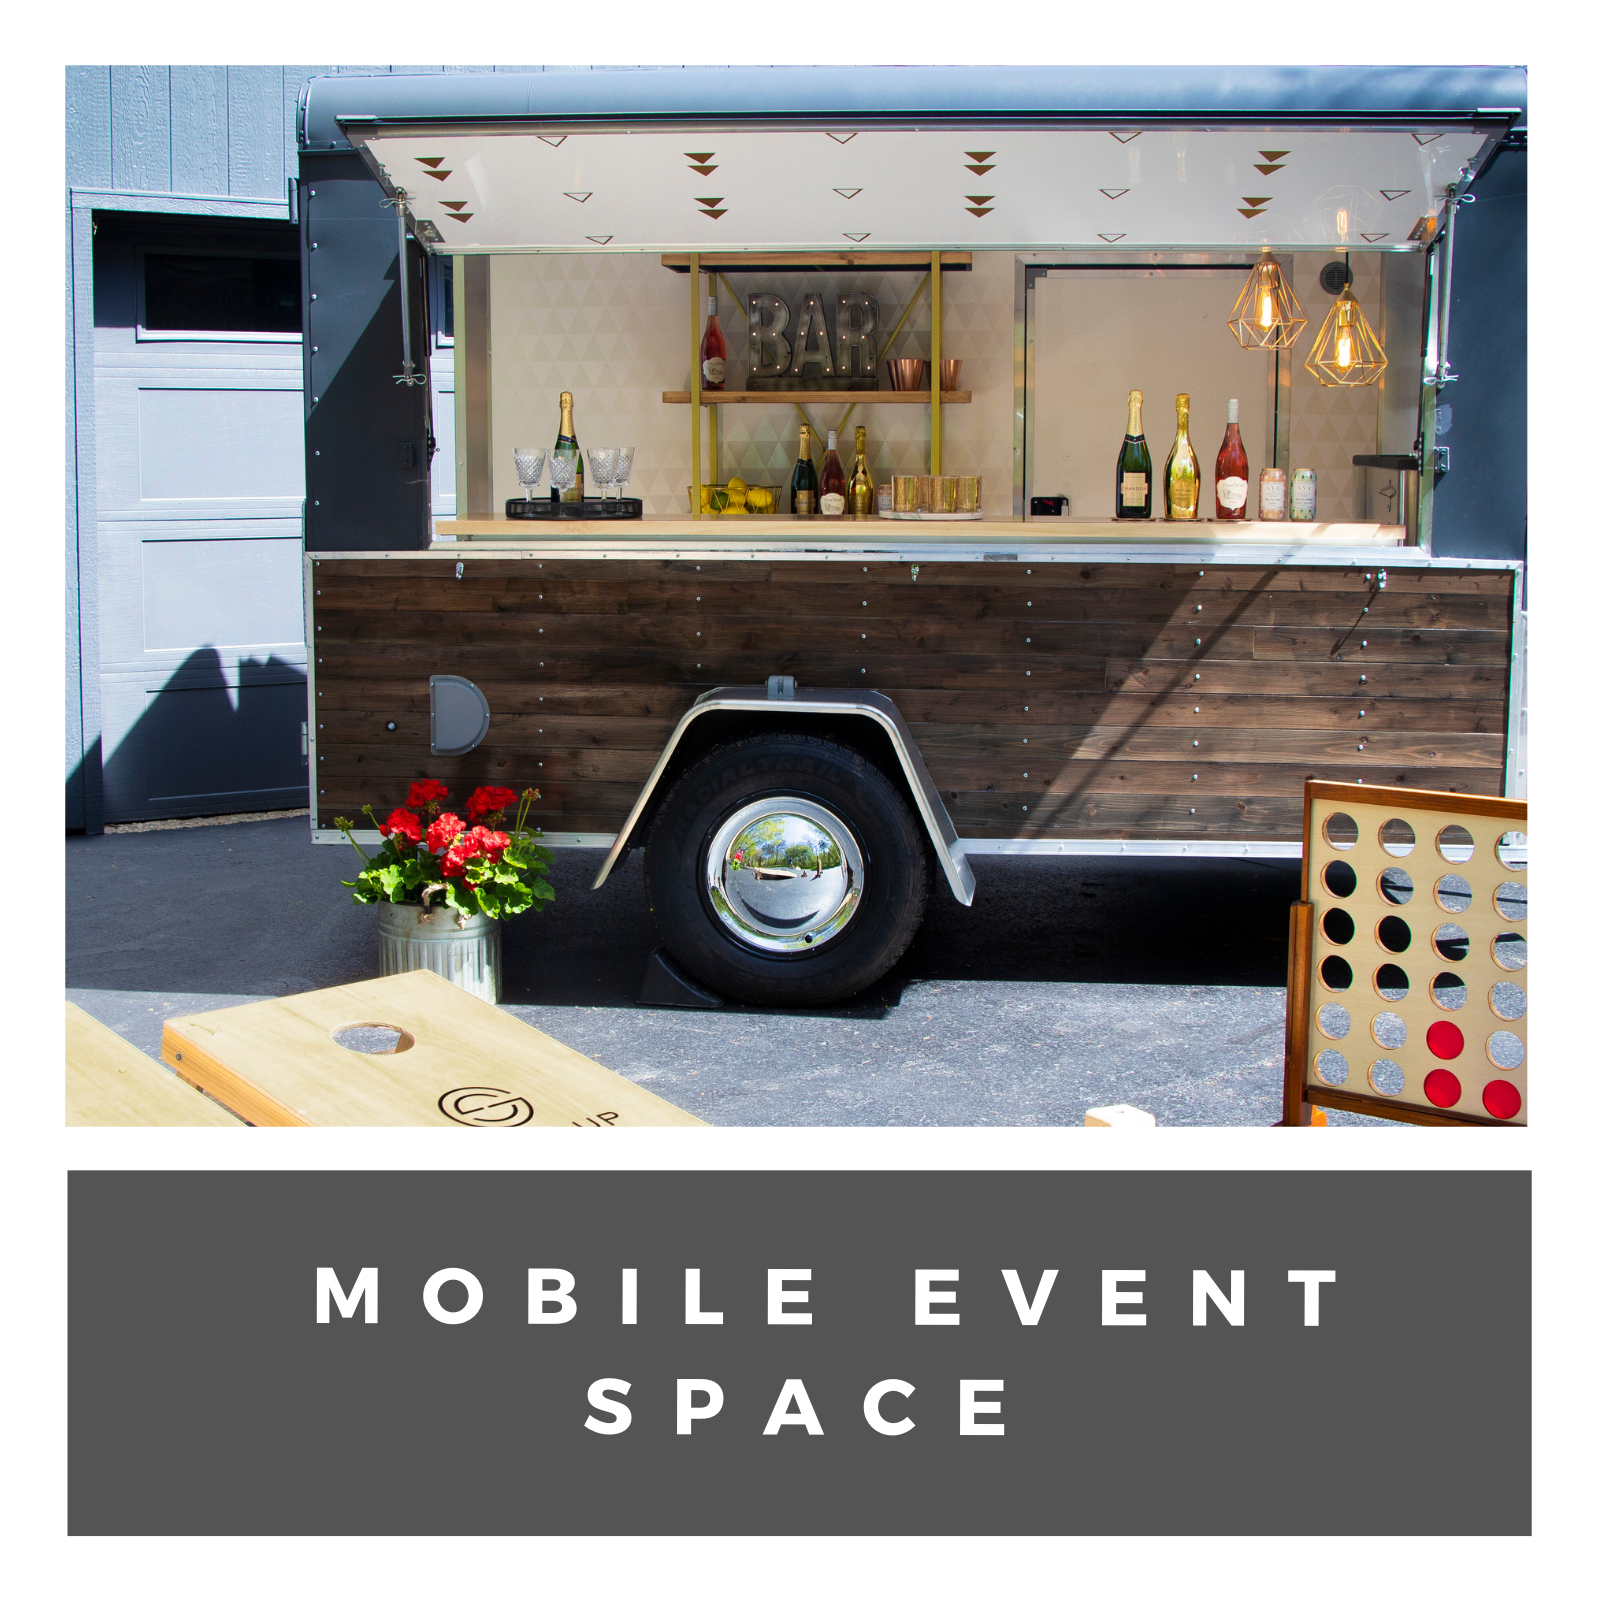 Mobile event space